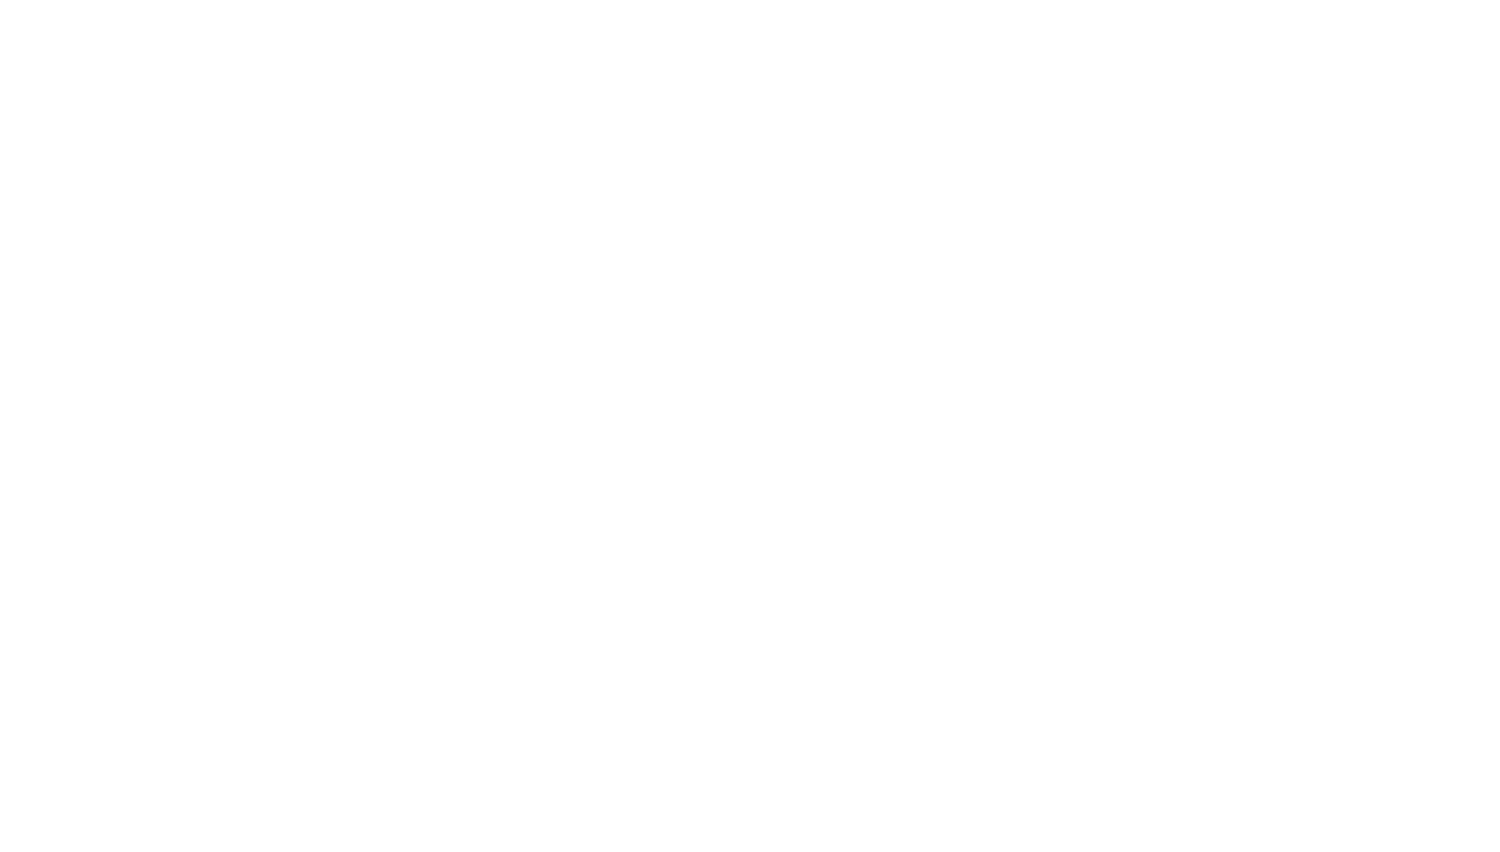 Krazy Glue At Walmart